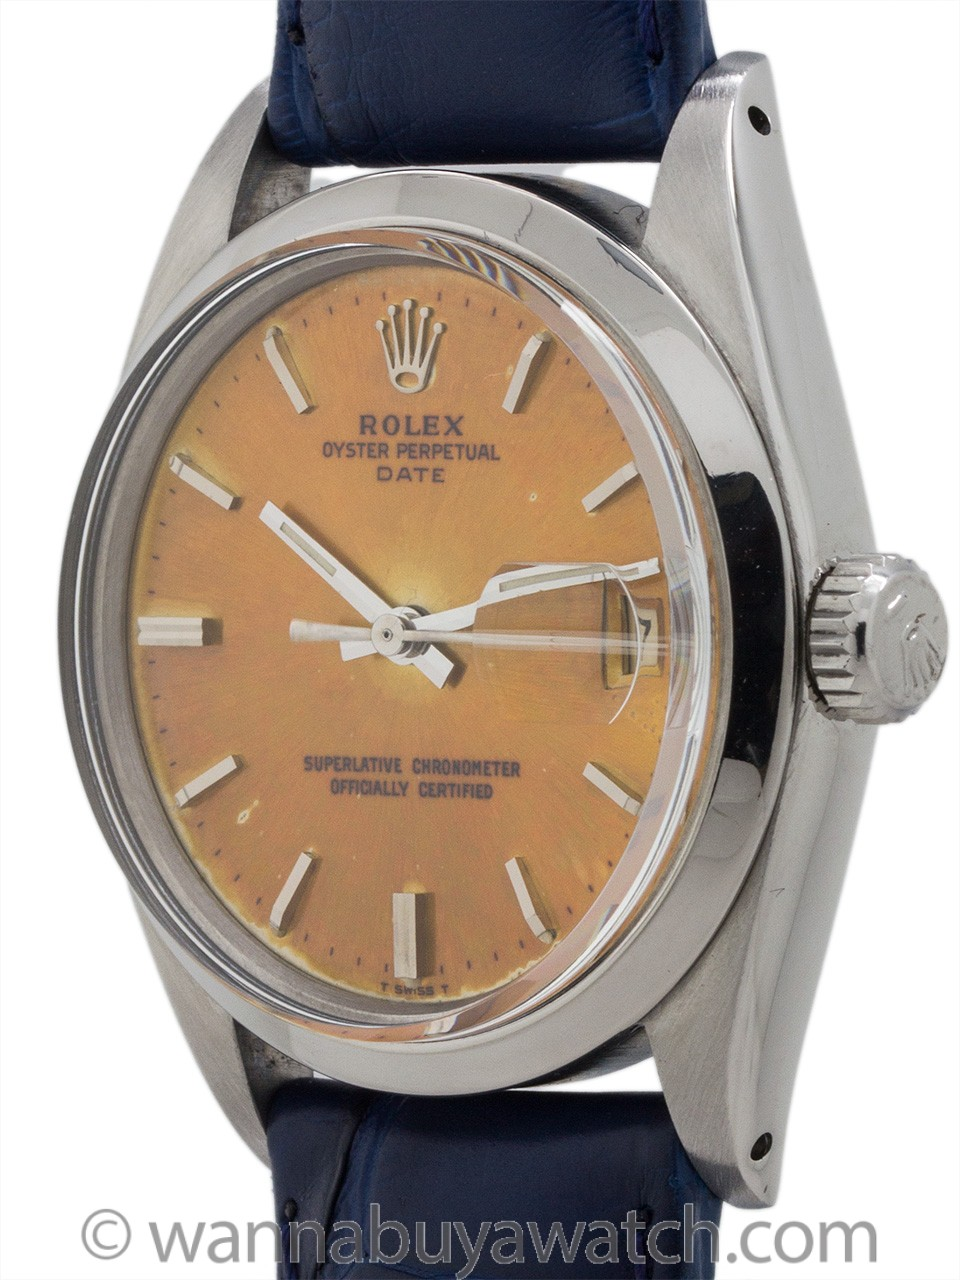 Rolex Oyster Perpetual Date ref 1500 Color Change Dial circa 1965